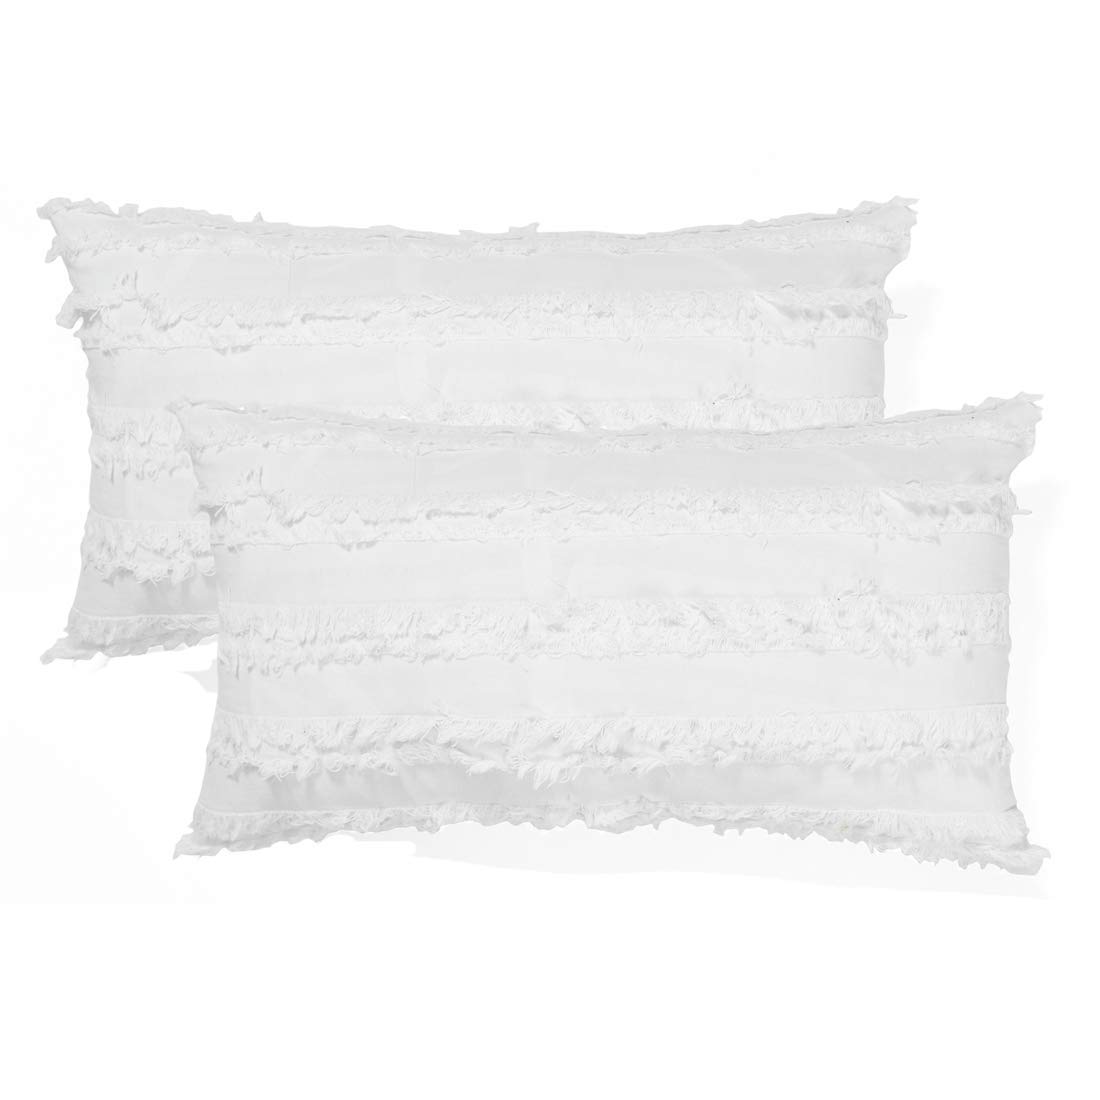 Cozy Lumbar Oblong Rectangle Throw Pillow Cover, Modern Fringe Cushion Covers for Couch Bed Sofa, Farmhouse Home Decor Neutral Pillow Cases, 12 x 20 Inches, Pack of 2, White